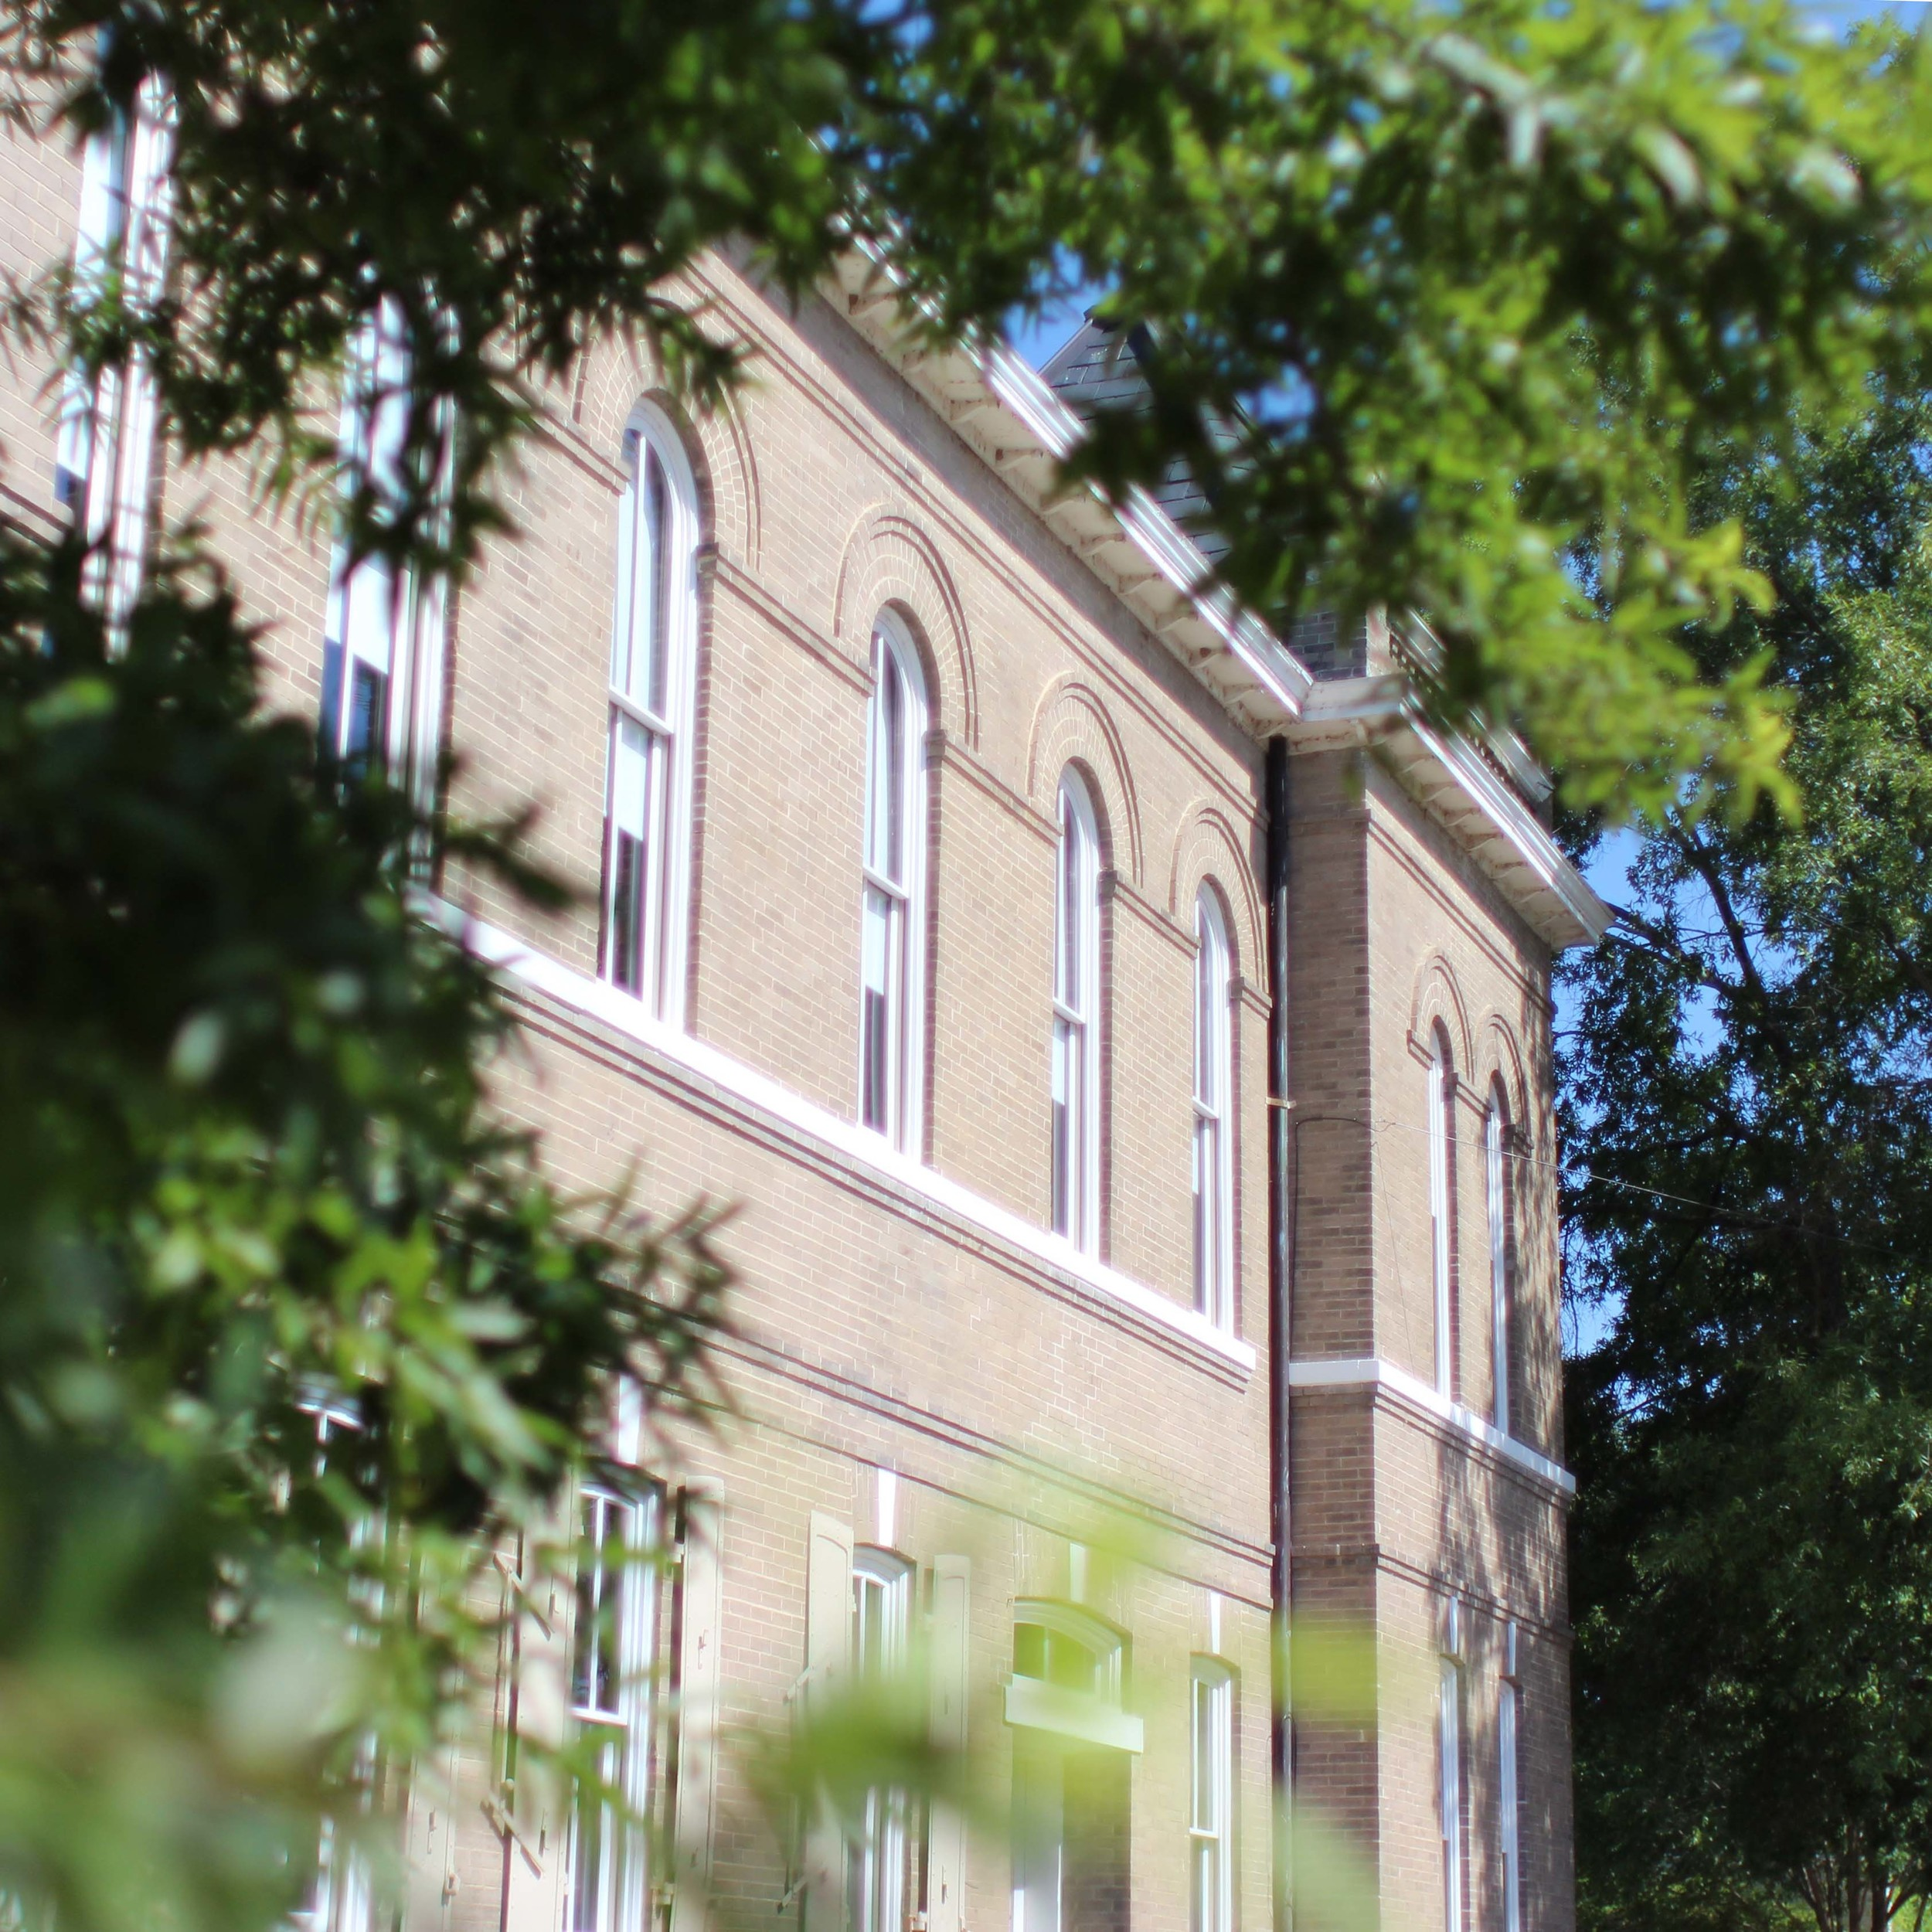 sumner-tallahatchie-courthouse-9.jpg